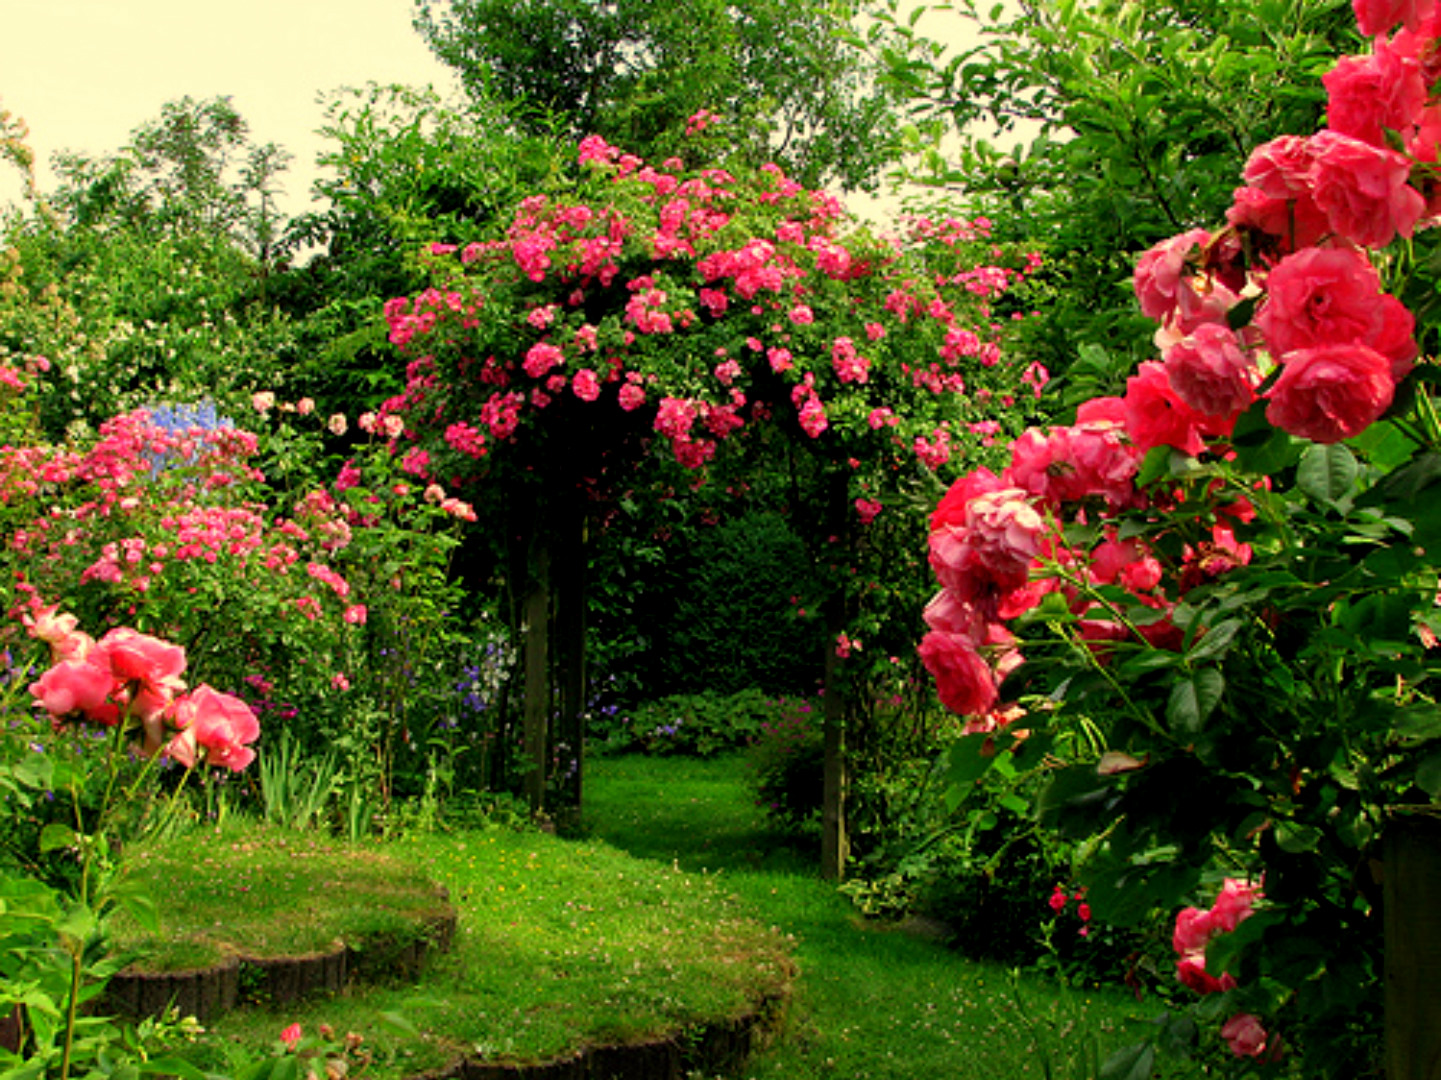 rose garden desktop hd cool wallpaper rose gardens high quality photo 1441x1080